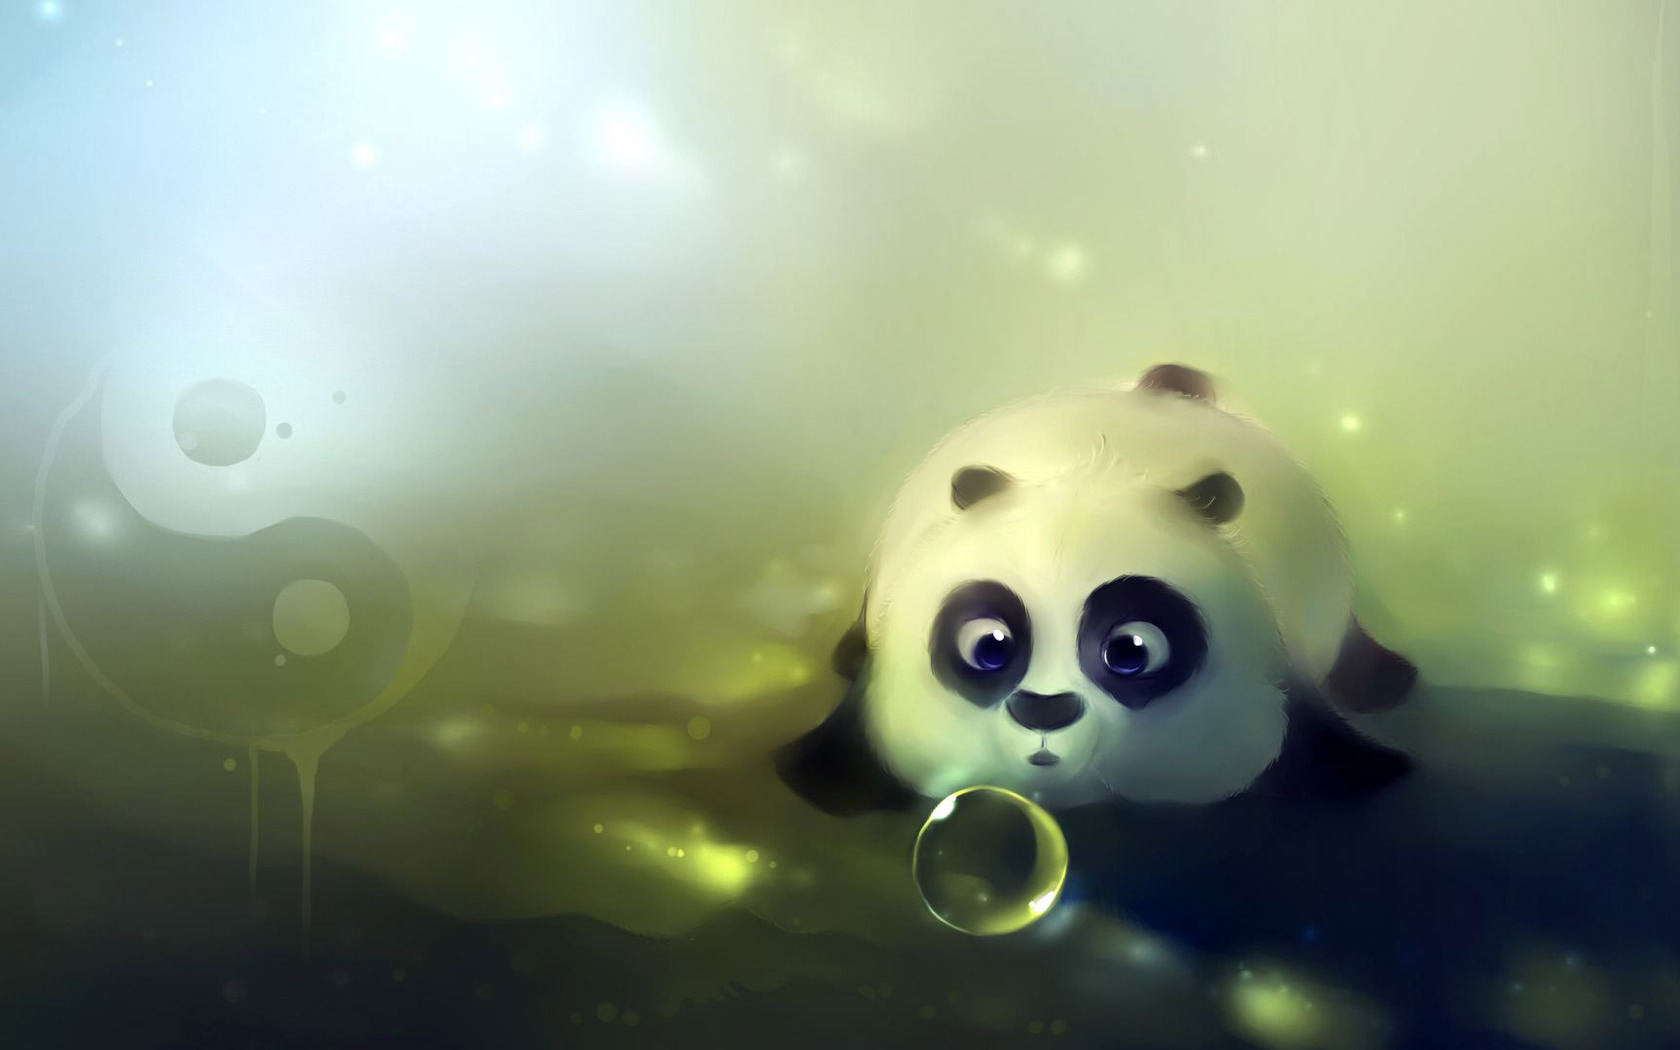 Download Cute panda playing with bubbles wallpaper 1680x1050